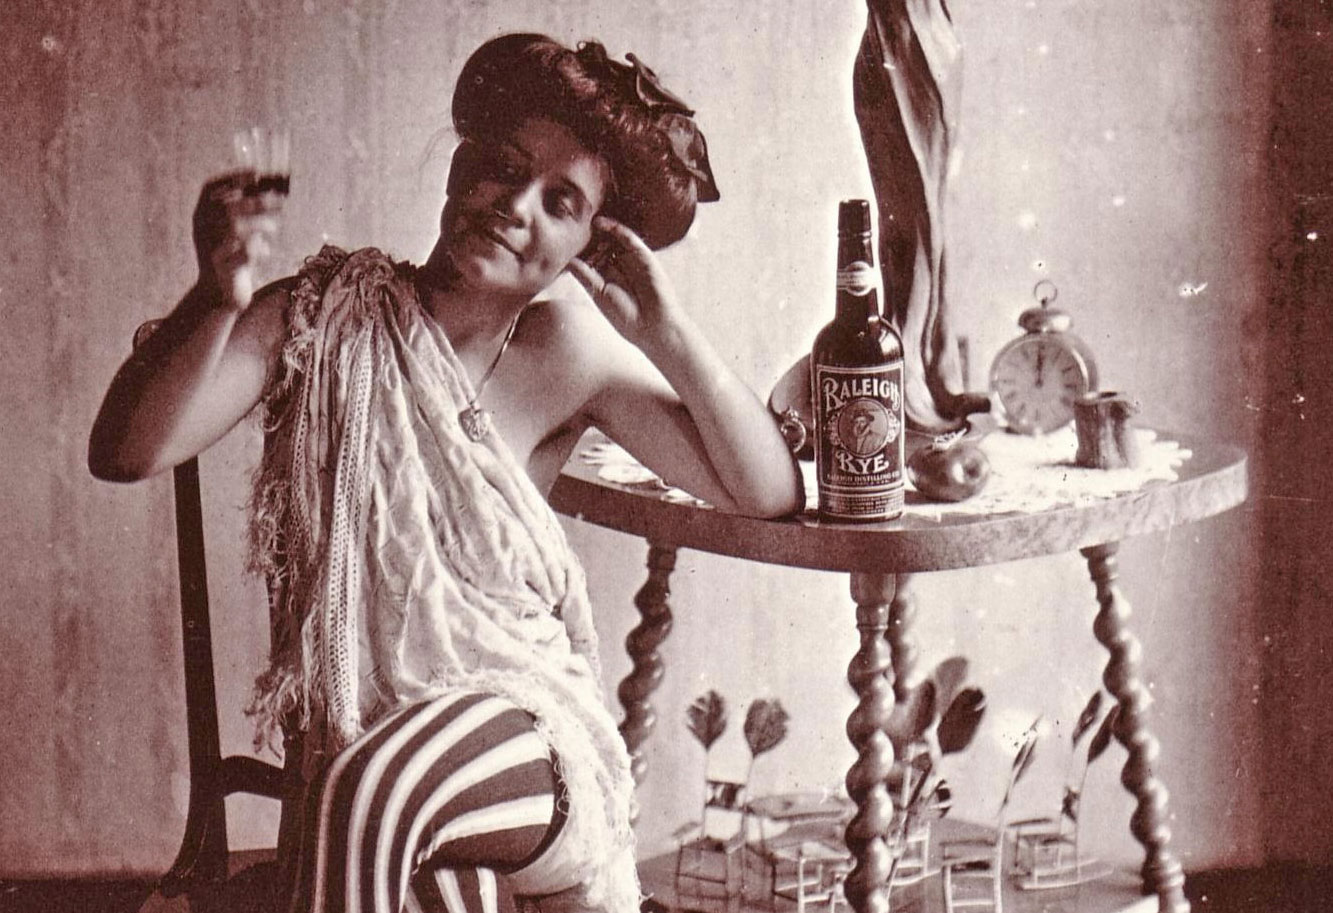 - Prostitute in Storyville, New Orleans, in 1921. Clearly Prohibition wasn't having much of an impact